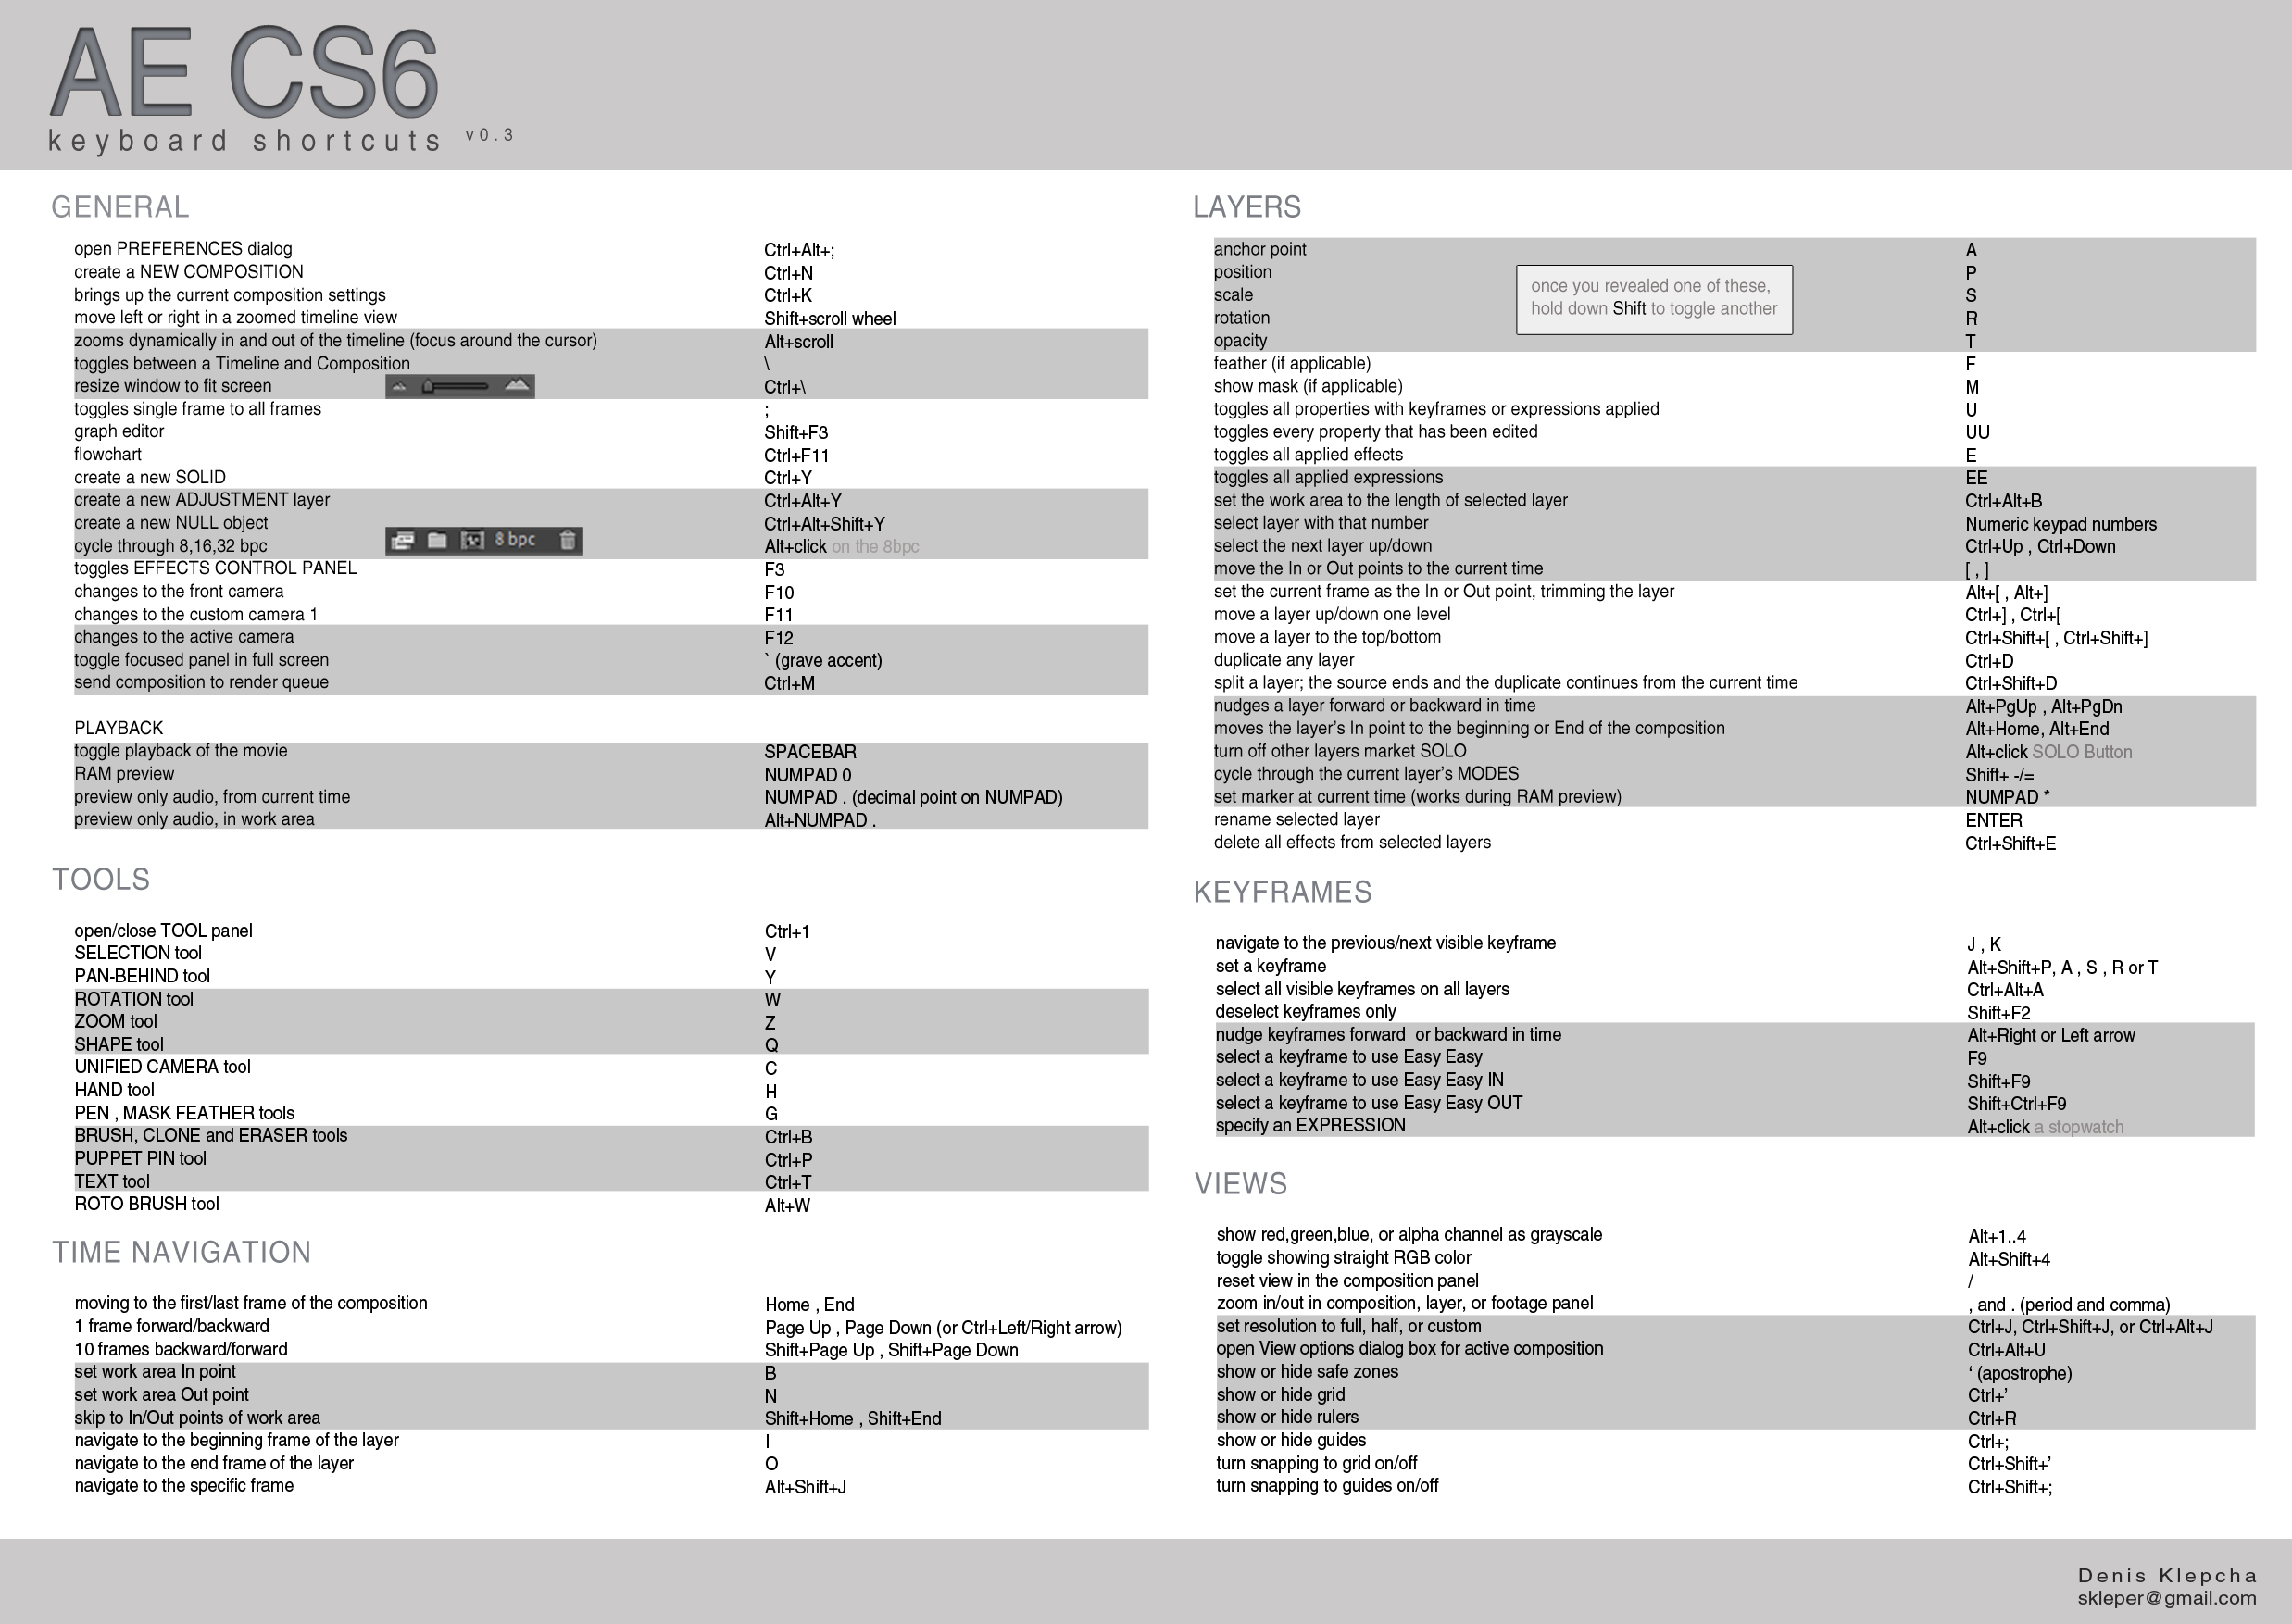 5 Cheat Sheets for Adobe Products